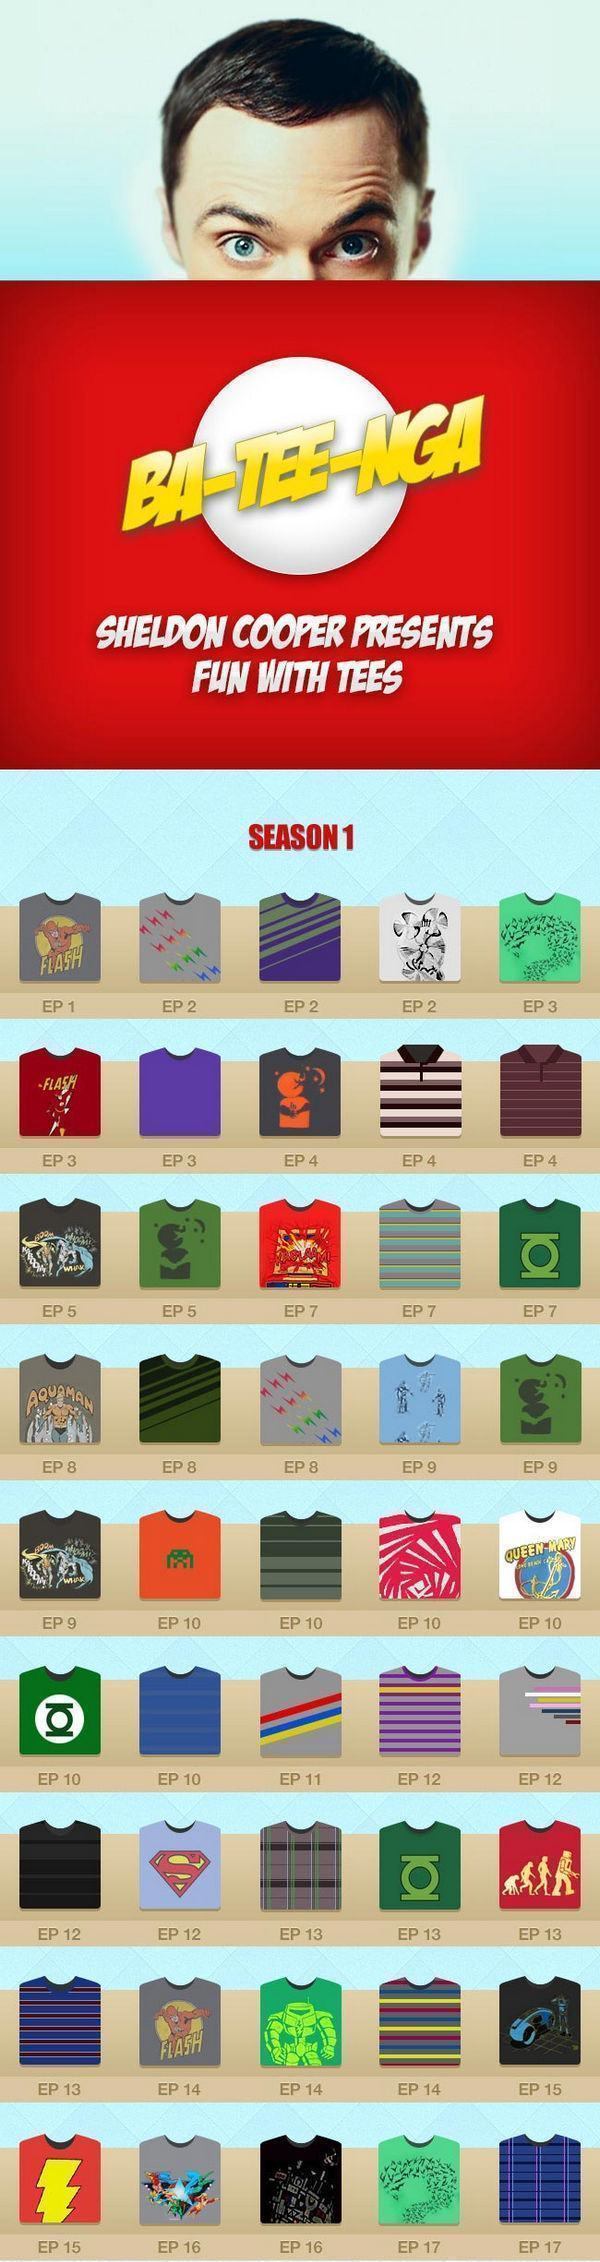 Todas as Camisetas do Sheldon Cooper